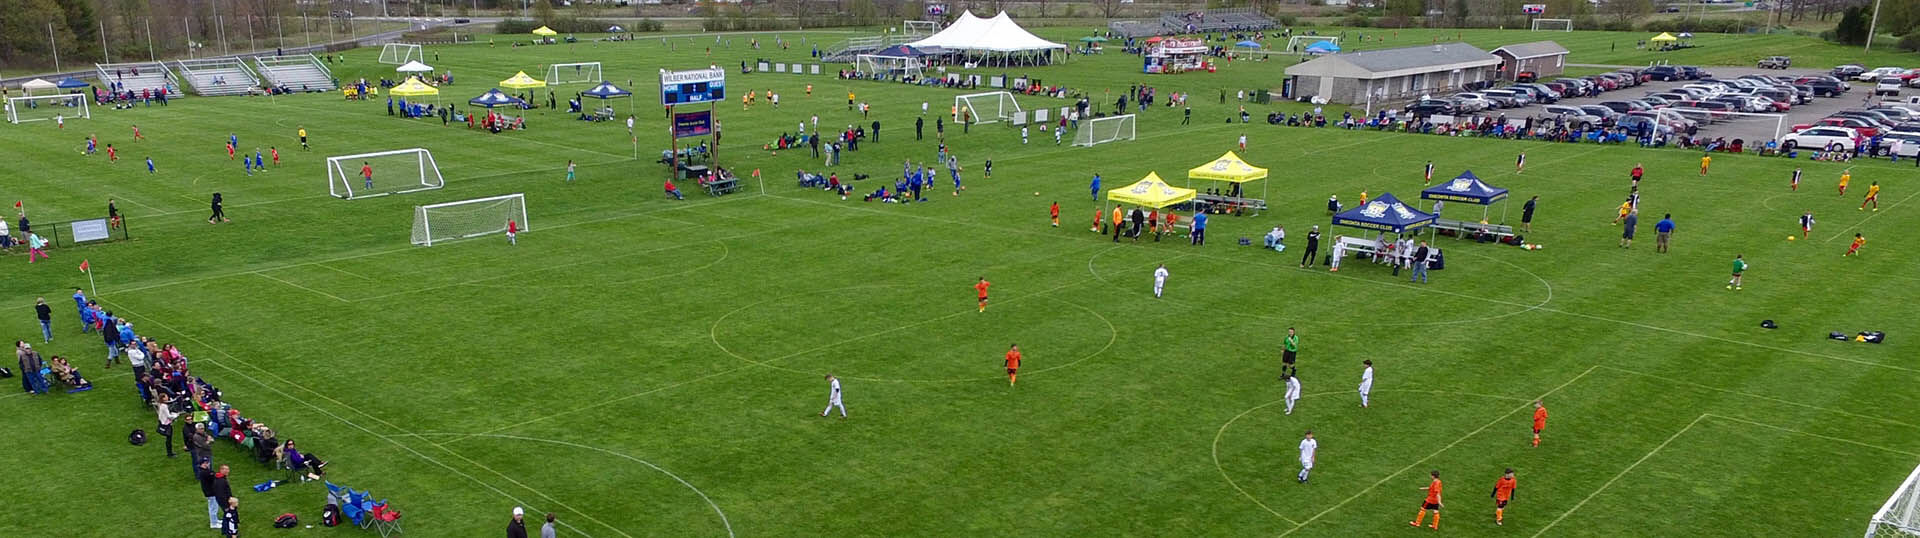 I88 Challenge at Wright National Soccer Campus